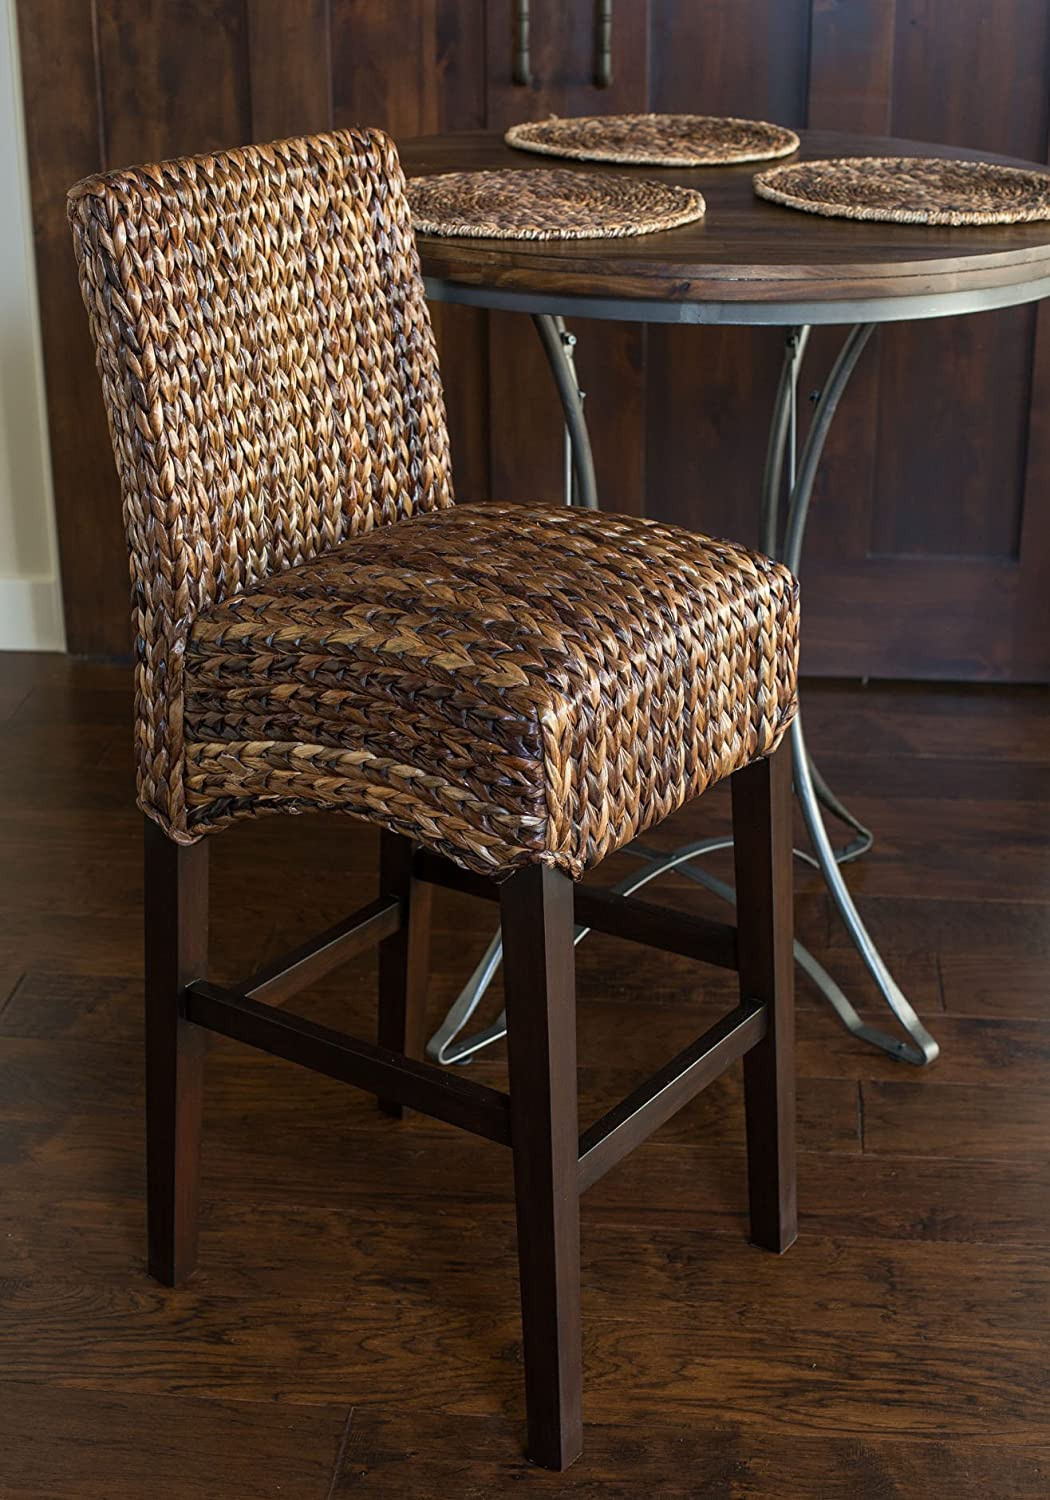 Exceptionnel Amazon.com: Bird Rock Seagrass Barstool (Bar Height) | Hand Woven |  Mahogany Wood Frame | Fully Assembled: Kitchen U0026 Dining